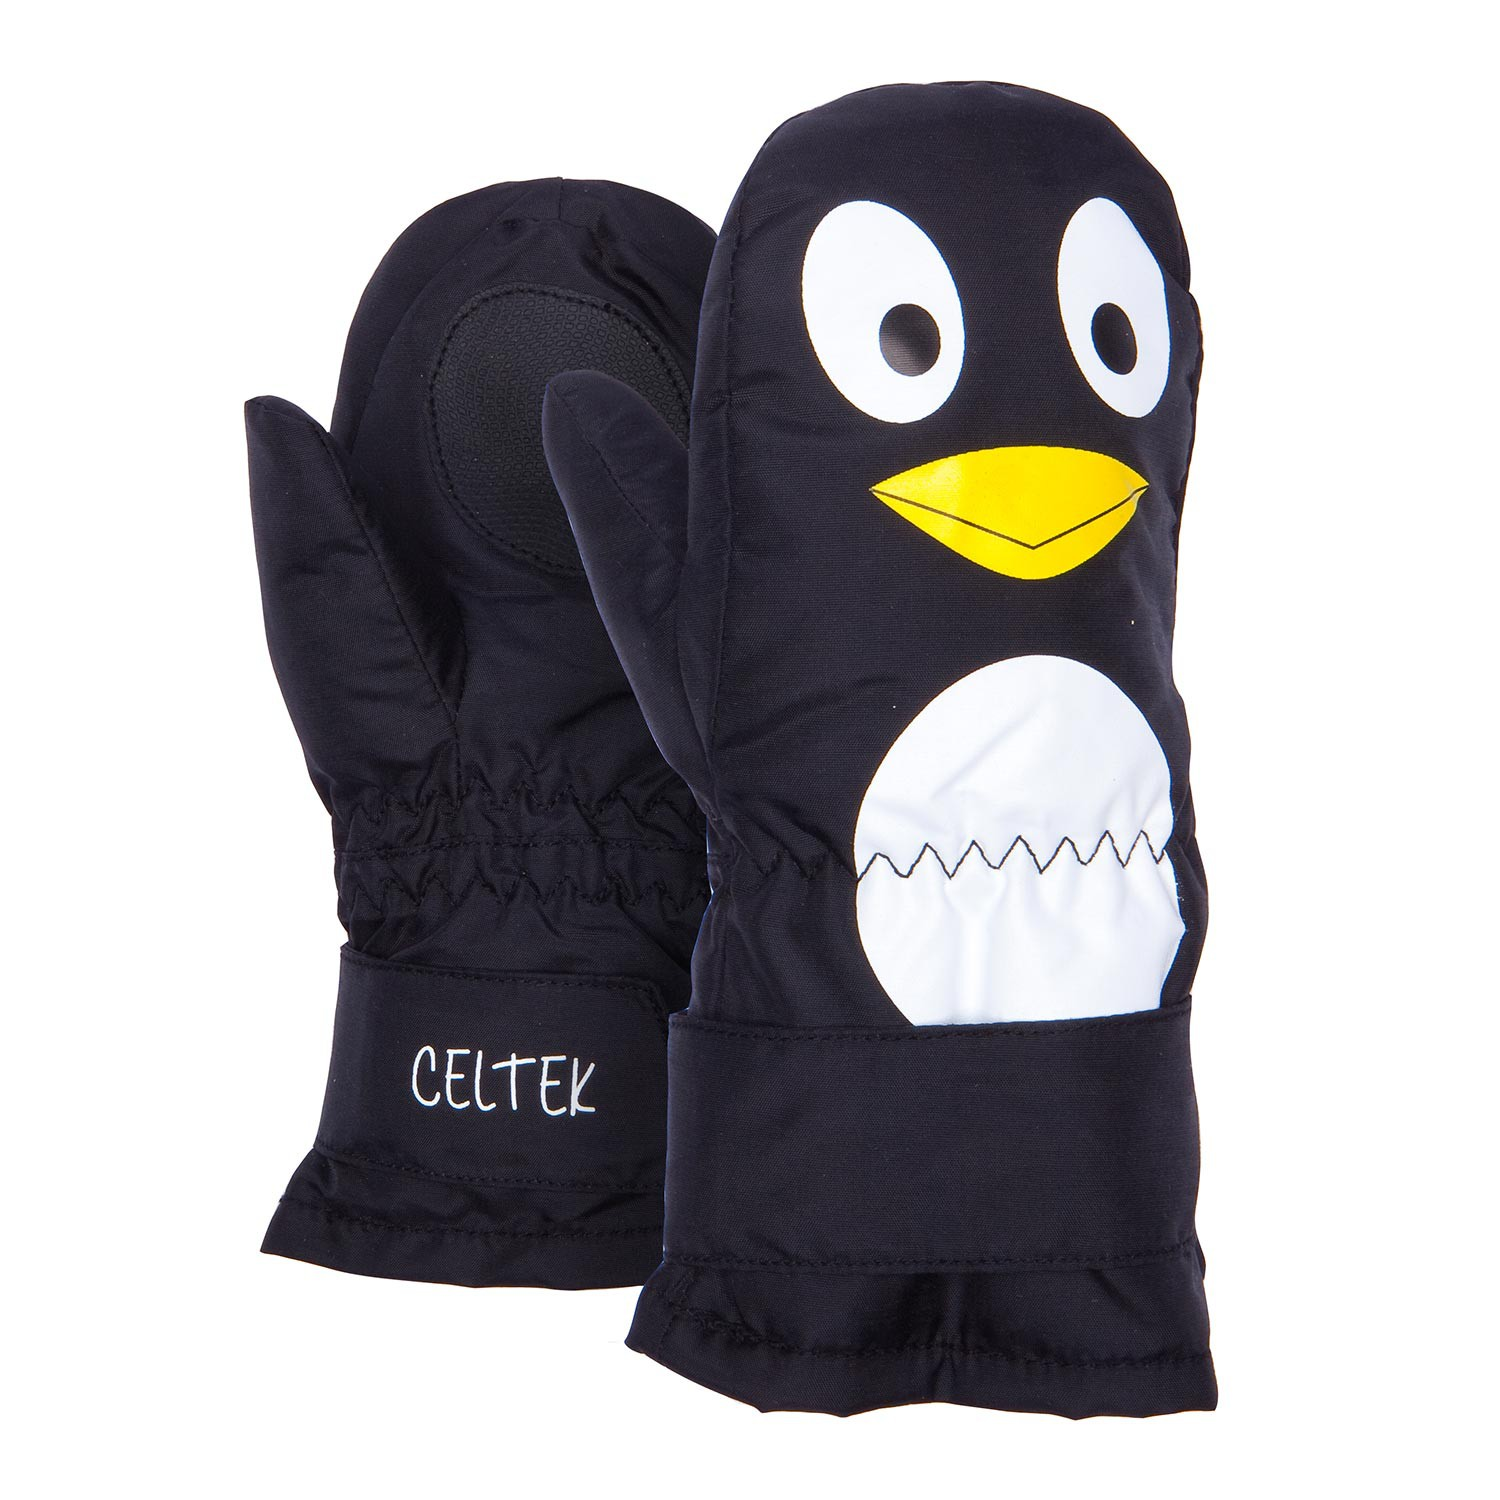 Rukavice Celtek Superstar Mitten penquin